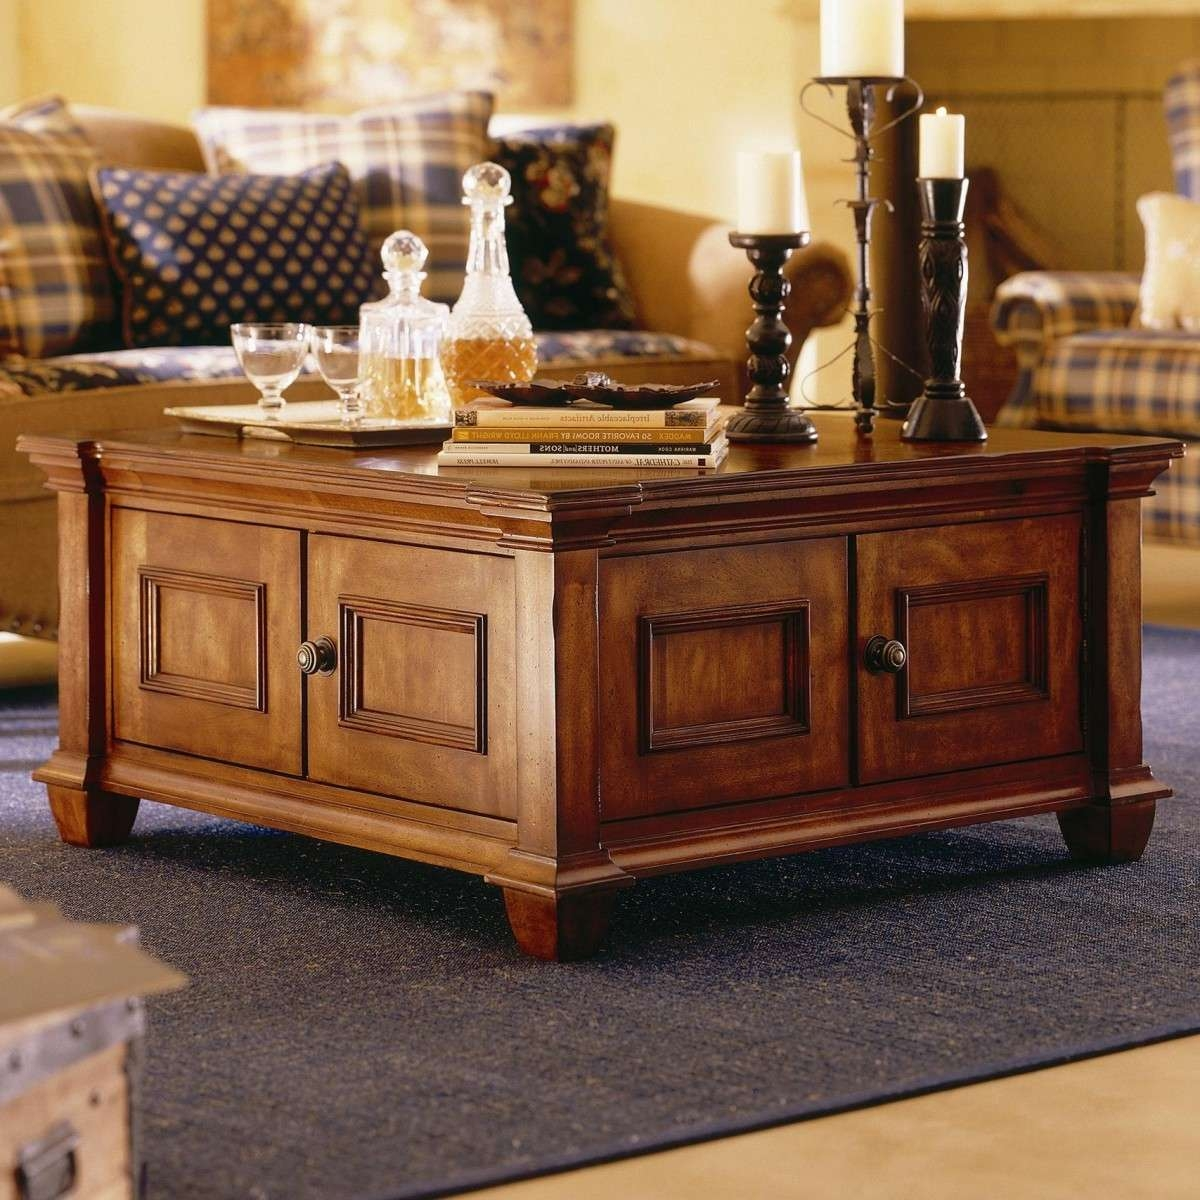 Trendy Square Wood Coffee Tables With Storage Intended For Coffee Tables : Square Coffee Table With Storage Cubes Drawers (View 20 of 20)